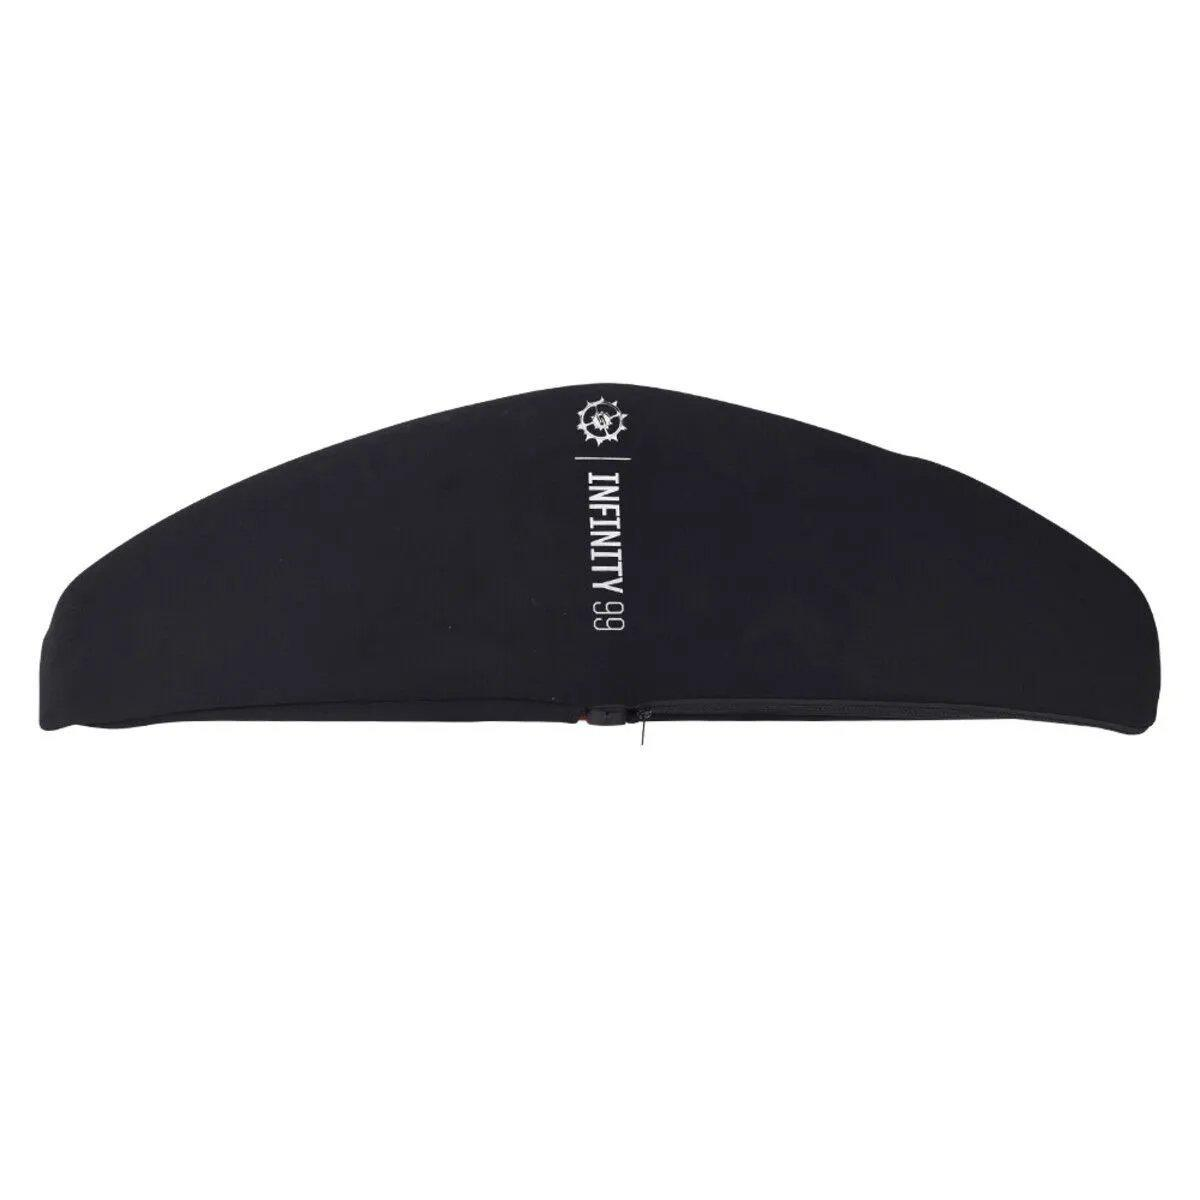 Slingshot HOVER GLIDE INFINITY CARBON NEOPRENE WING COVER-Big Winds